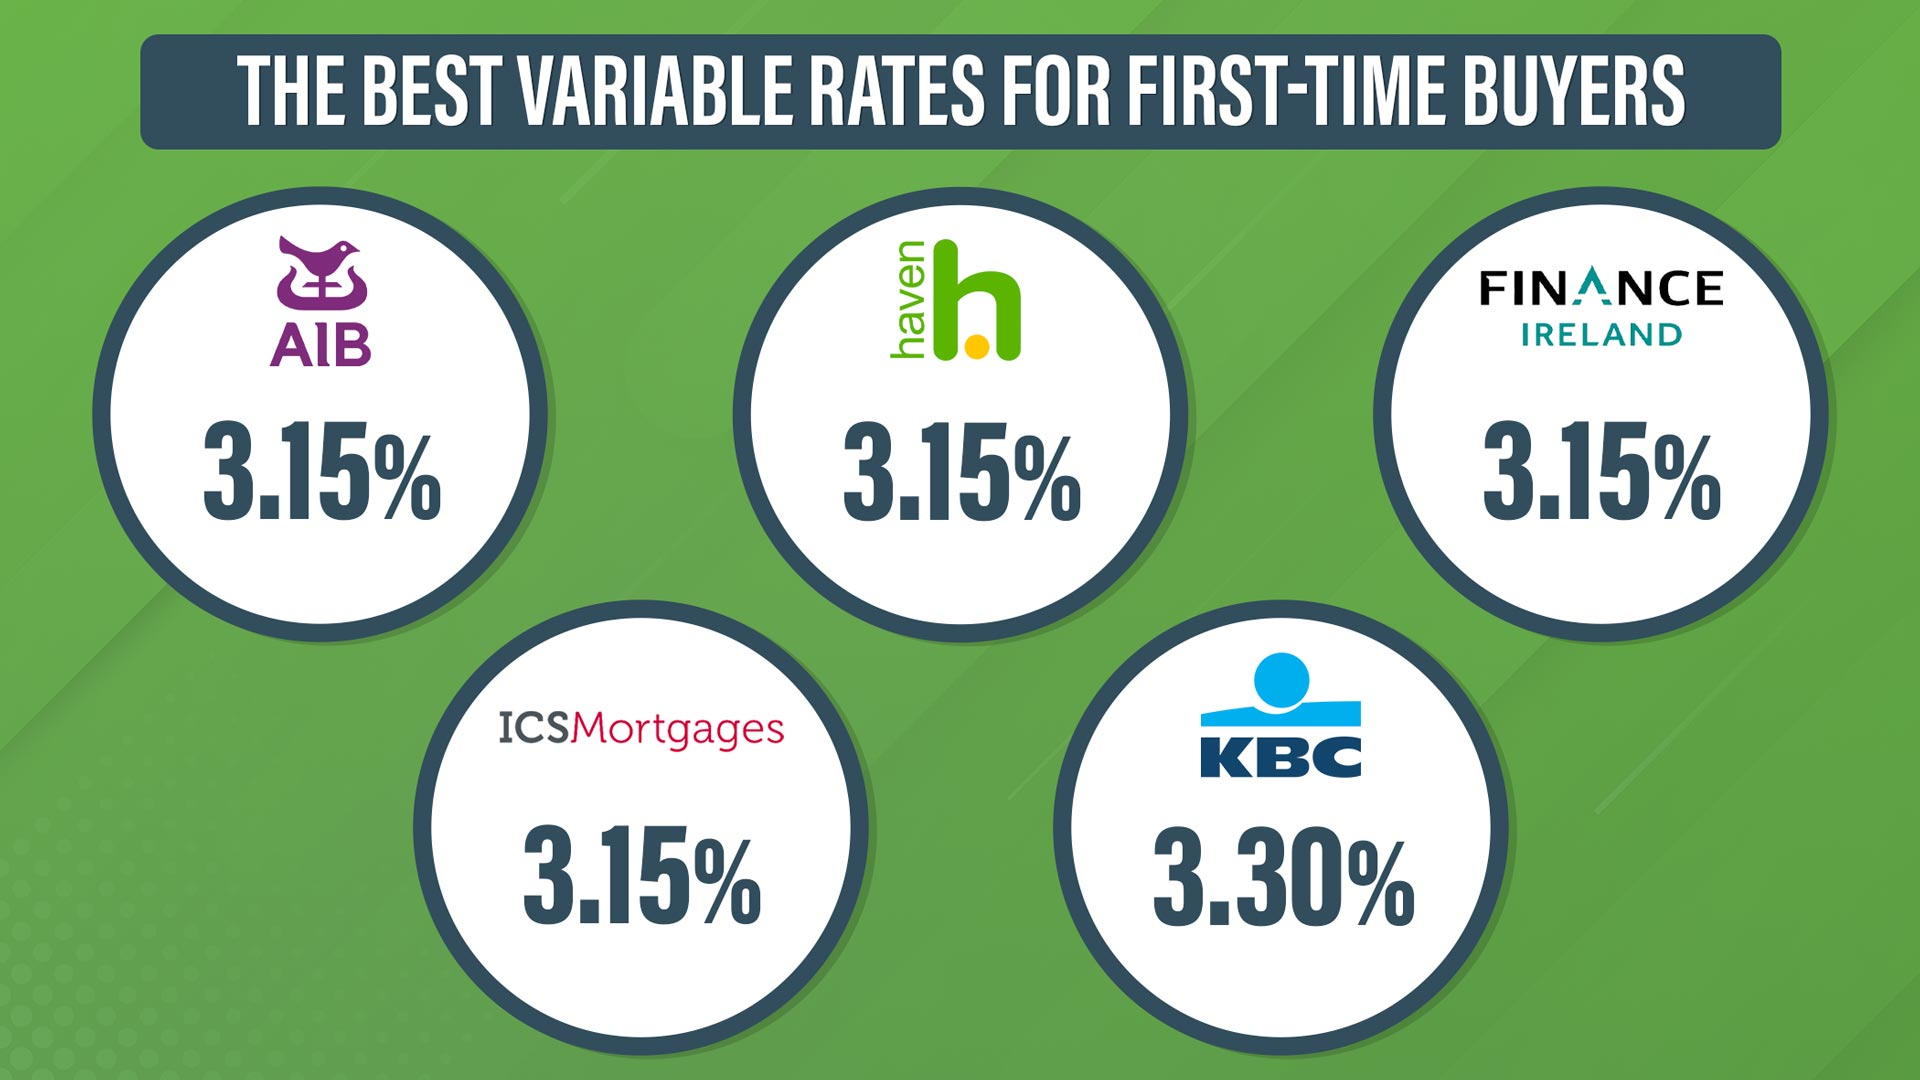 which bank has the best mortgage rates for first-time buyers